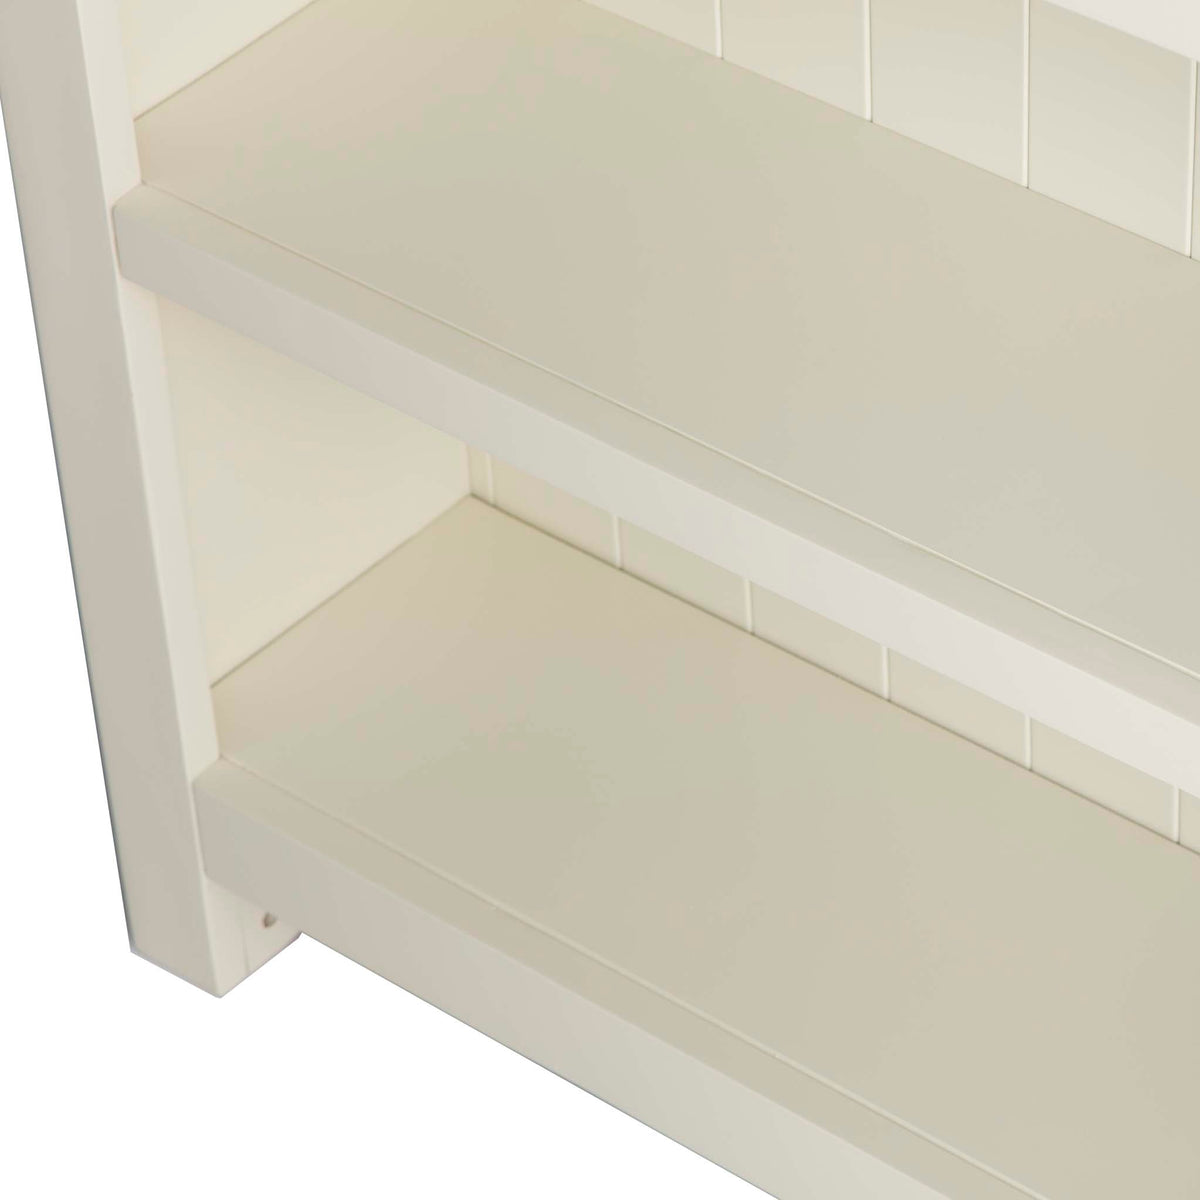 Farrow Cream Large Bookcase - Looking down on edge of shelves